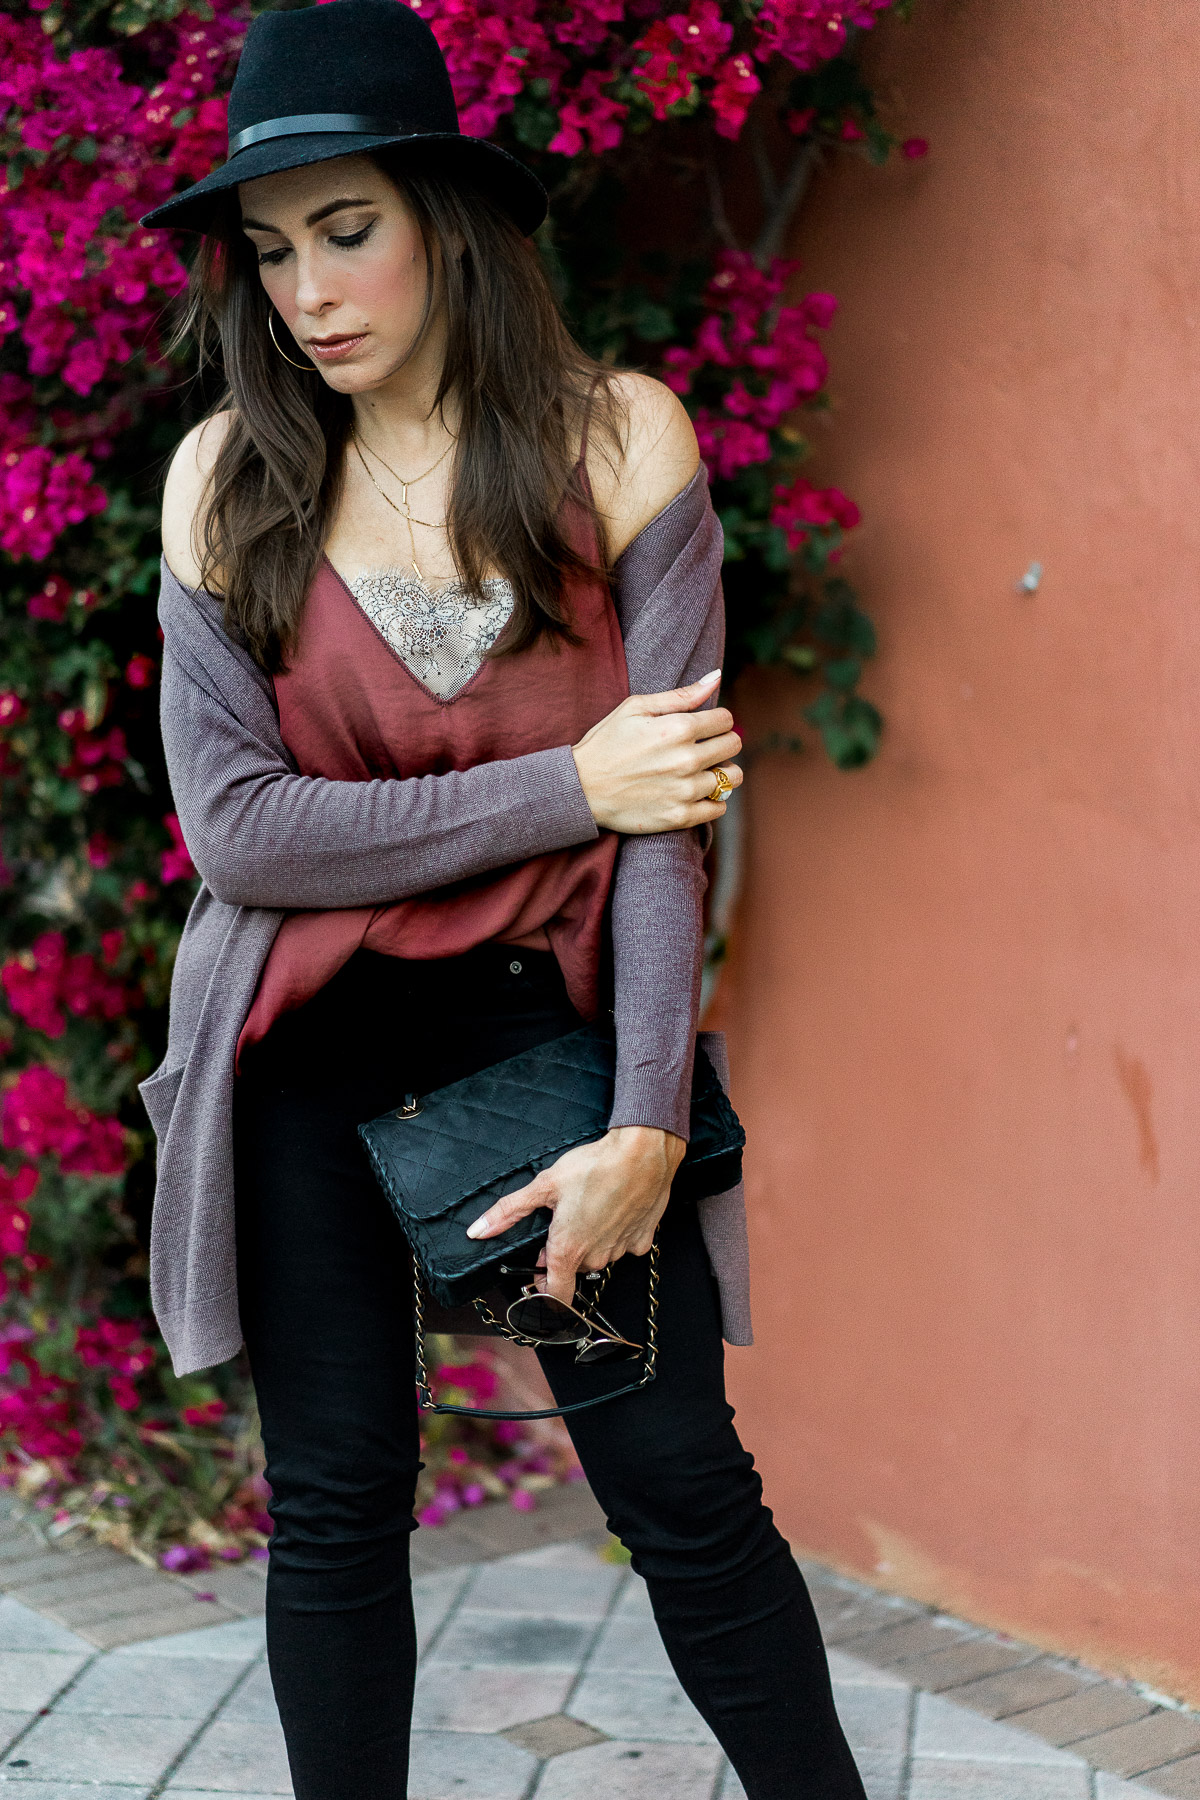 Free People Deep V cami with lace is worn by Amanda of AGlamLifestyle blog with her draped Old Navy open front cardigan while carrying her classic Chanel bag